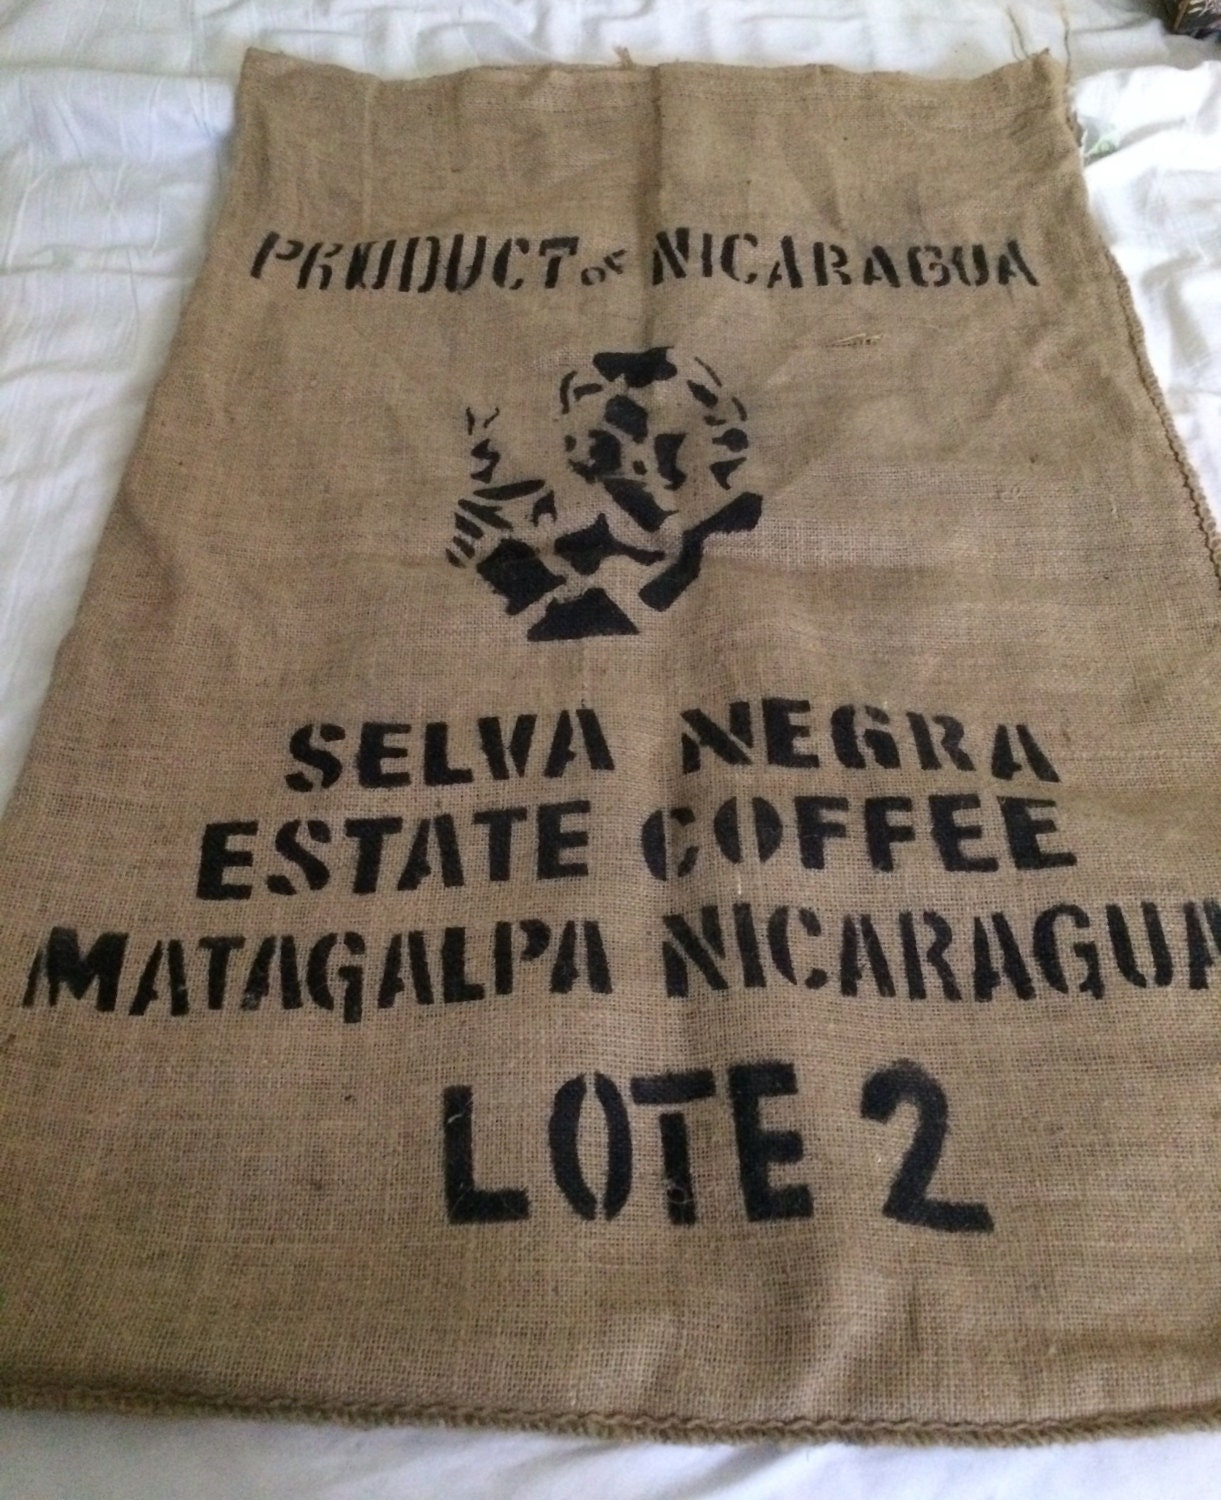 Burlap coffee bag crafts -  7 20 Shipping